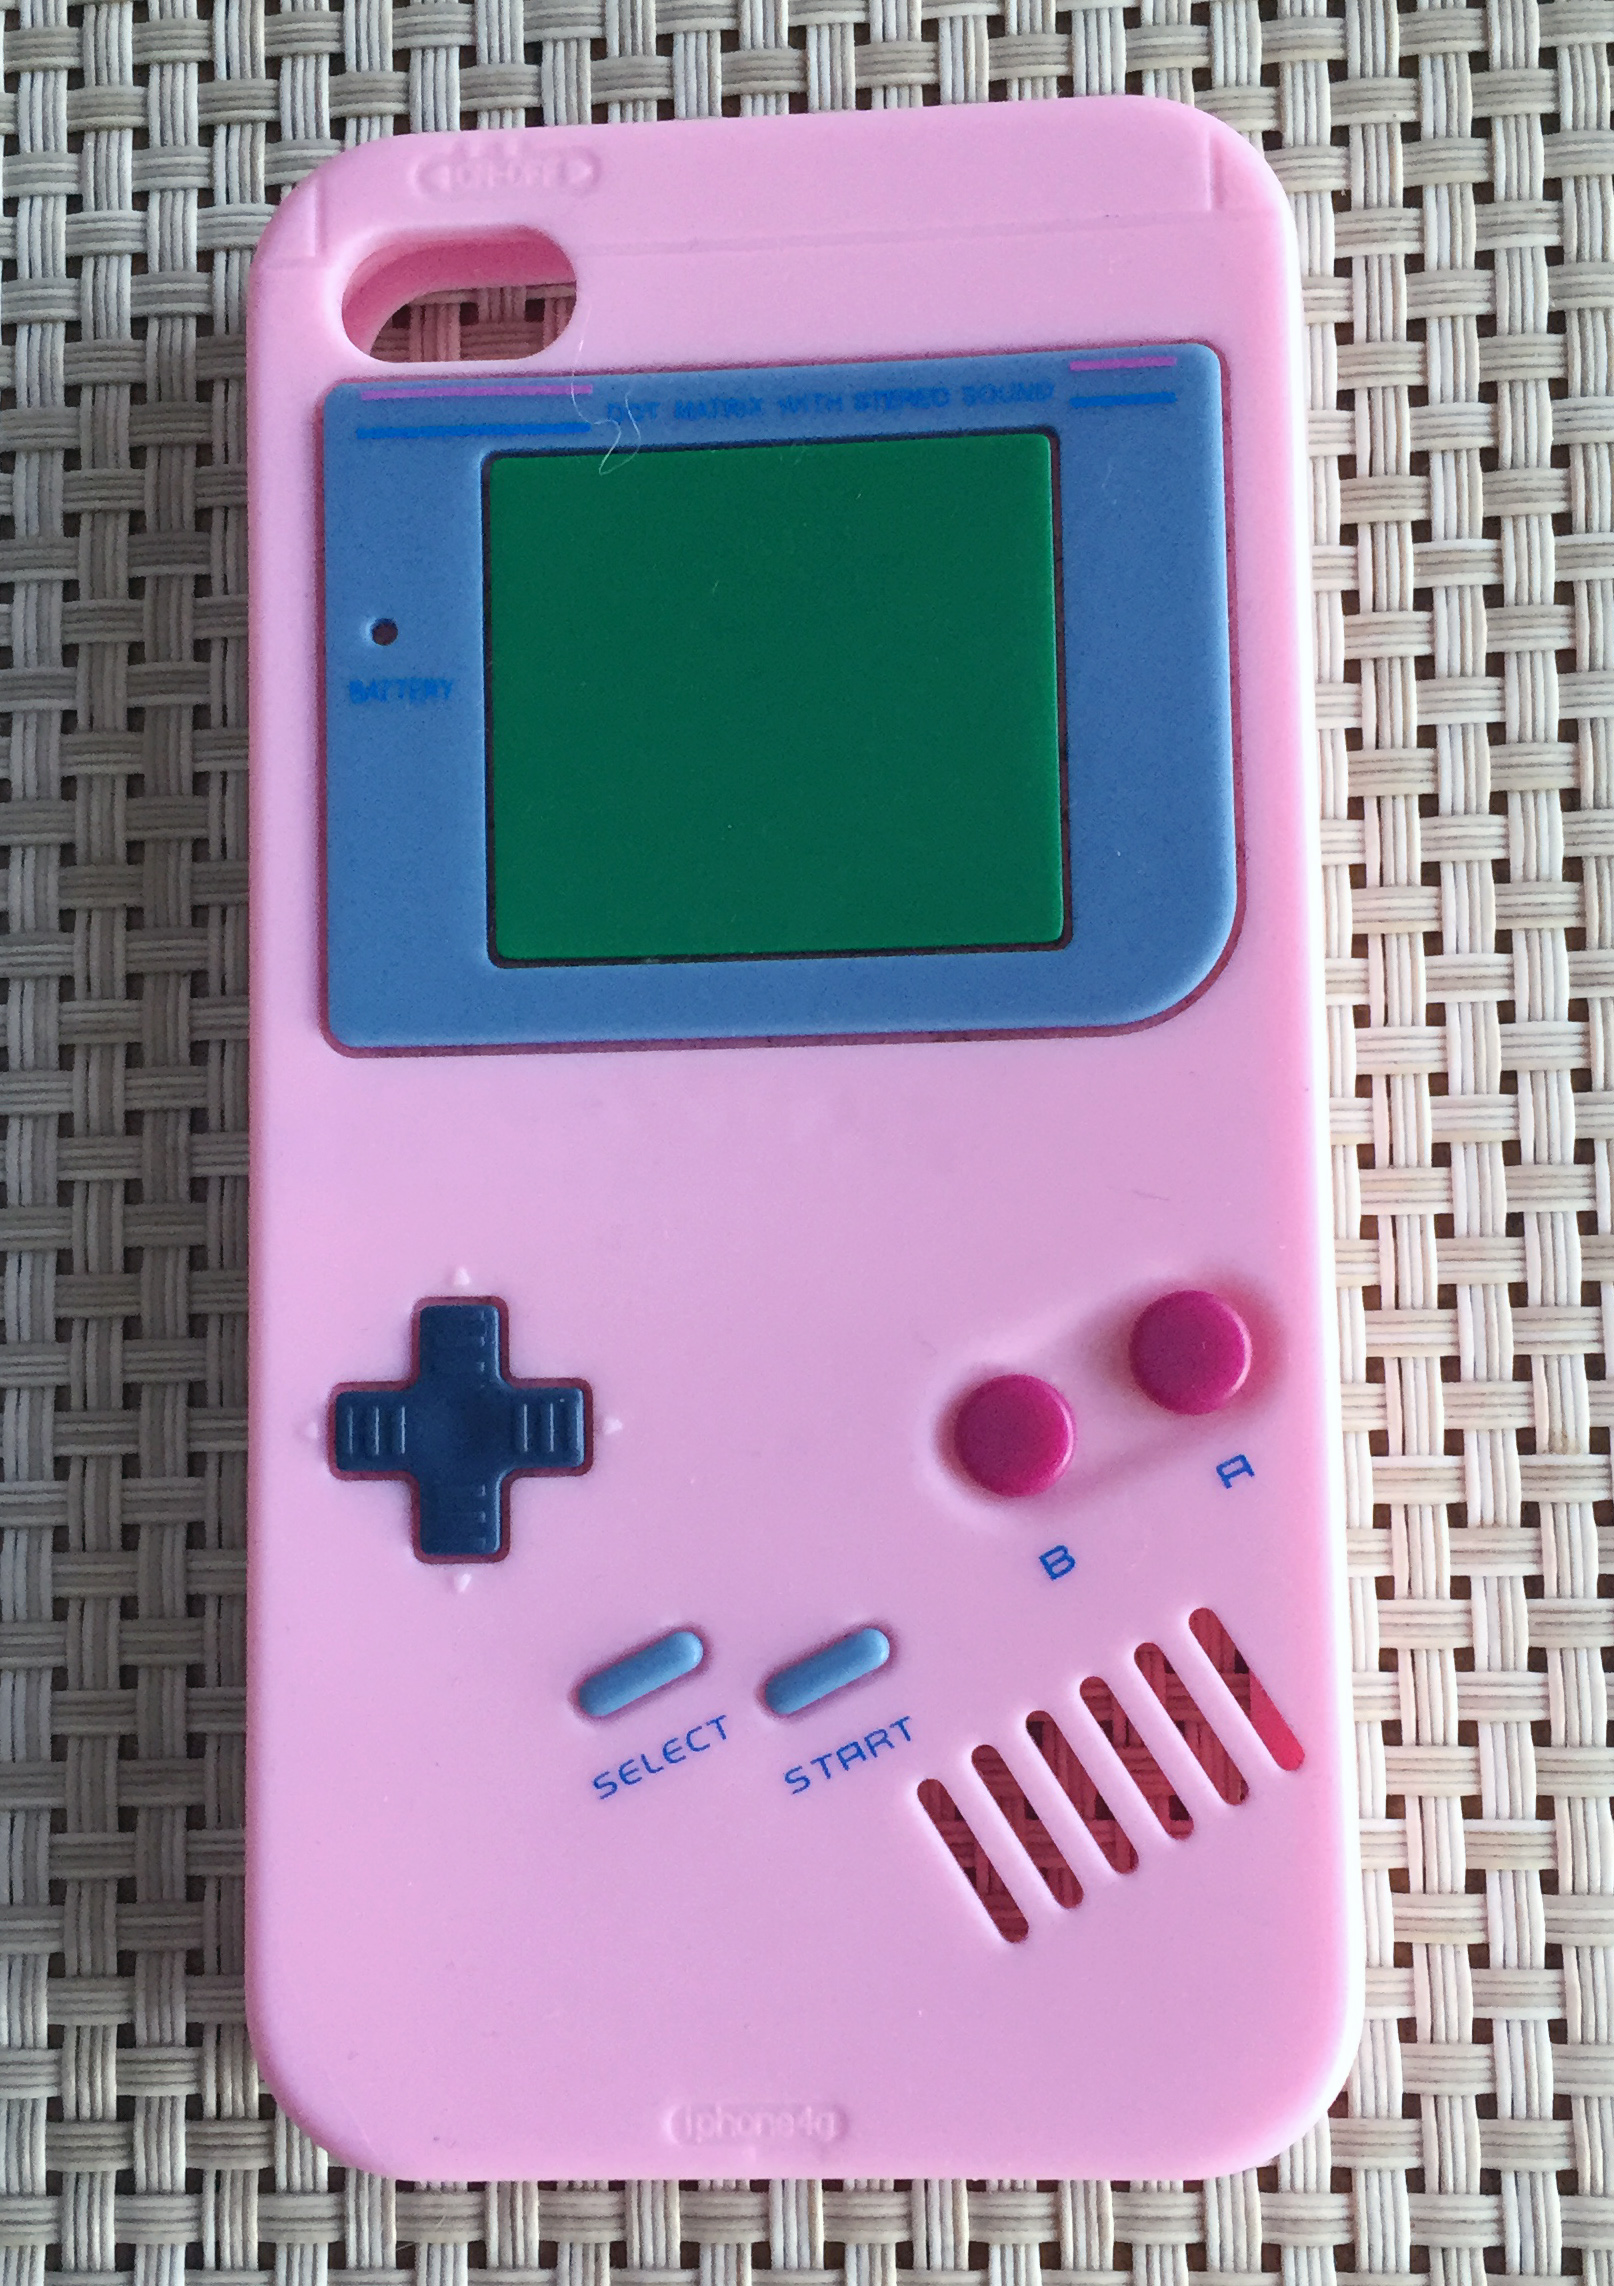 buy online 147aa 2dbf5 Pink Silicone Retry Style Ninendo GameBoy Color Case for iPhone 4 4s